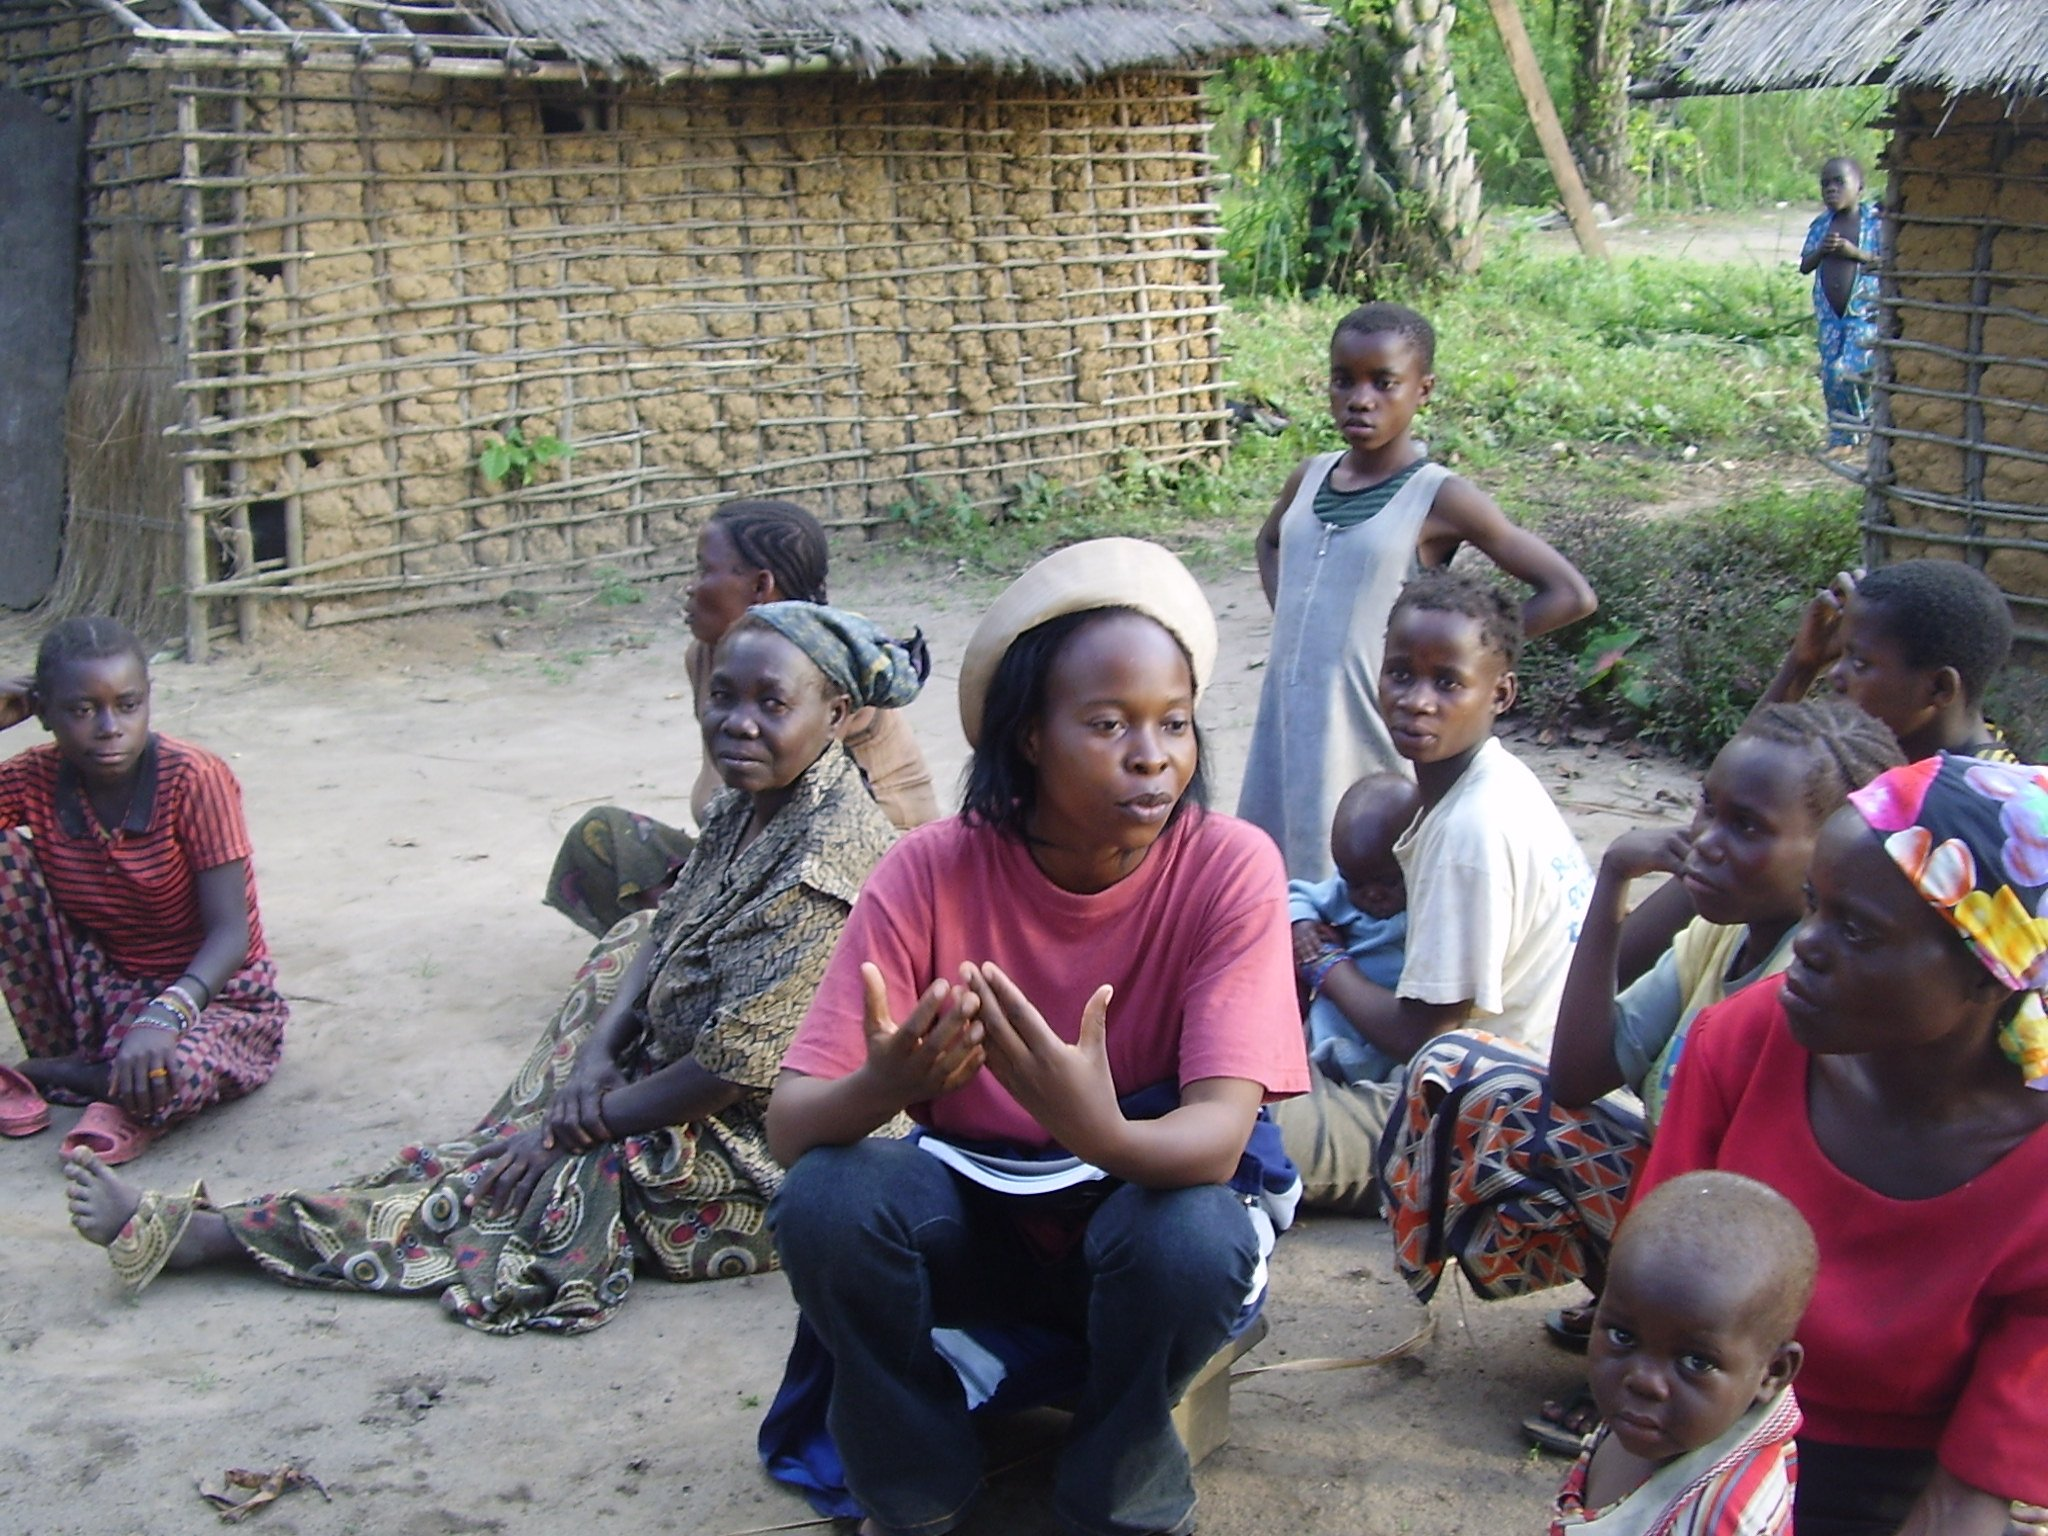 Baka Women and children in a village in Plateaux district discussing an NGO project, Congo, March 2008.